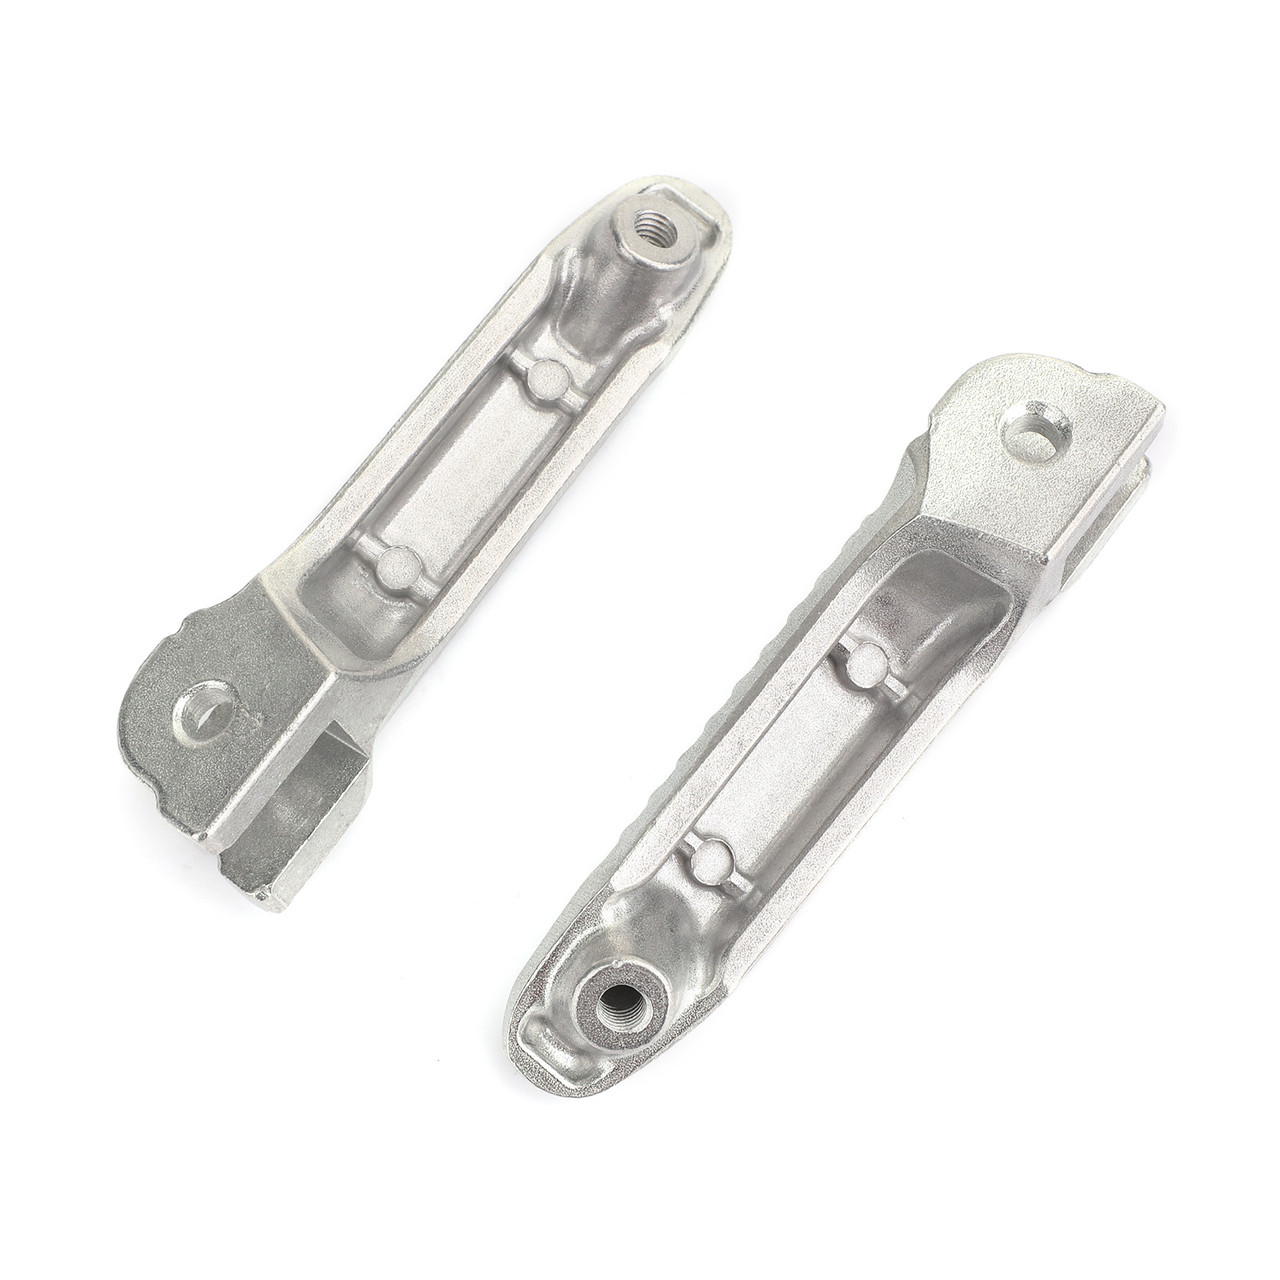 Front Footrests Foot Peg for BMW S1000RR K46 08-19 S1000R K47 13-19 R nineT Racer K32 15-19 HP4 K42 11-14 Silver